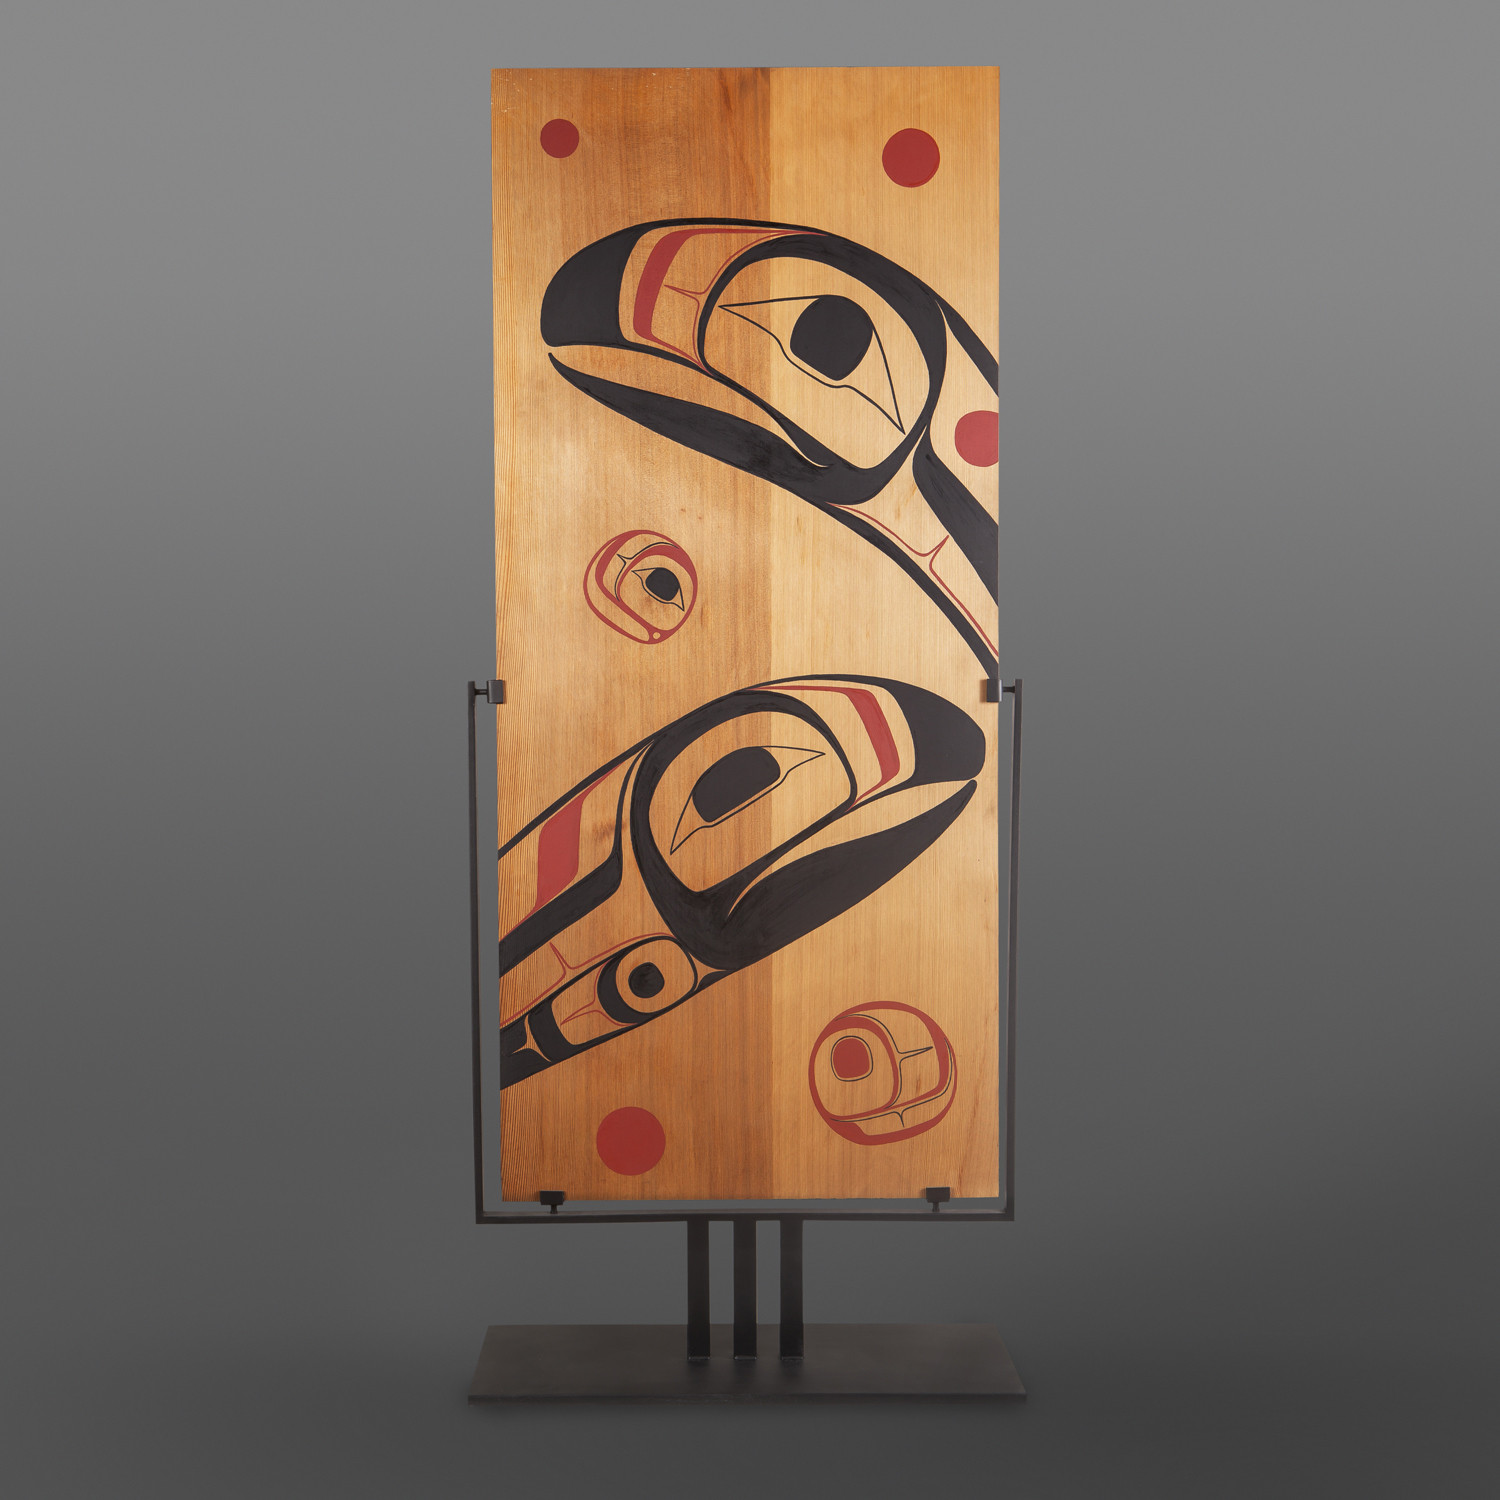 "Salmon Journey Landon Gunn Kwakwaka'wakw Red cedar, paint Custom steel mount 56"" x 23"" $4500"